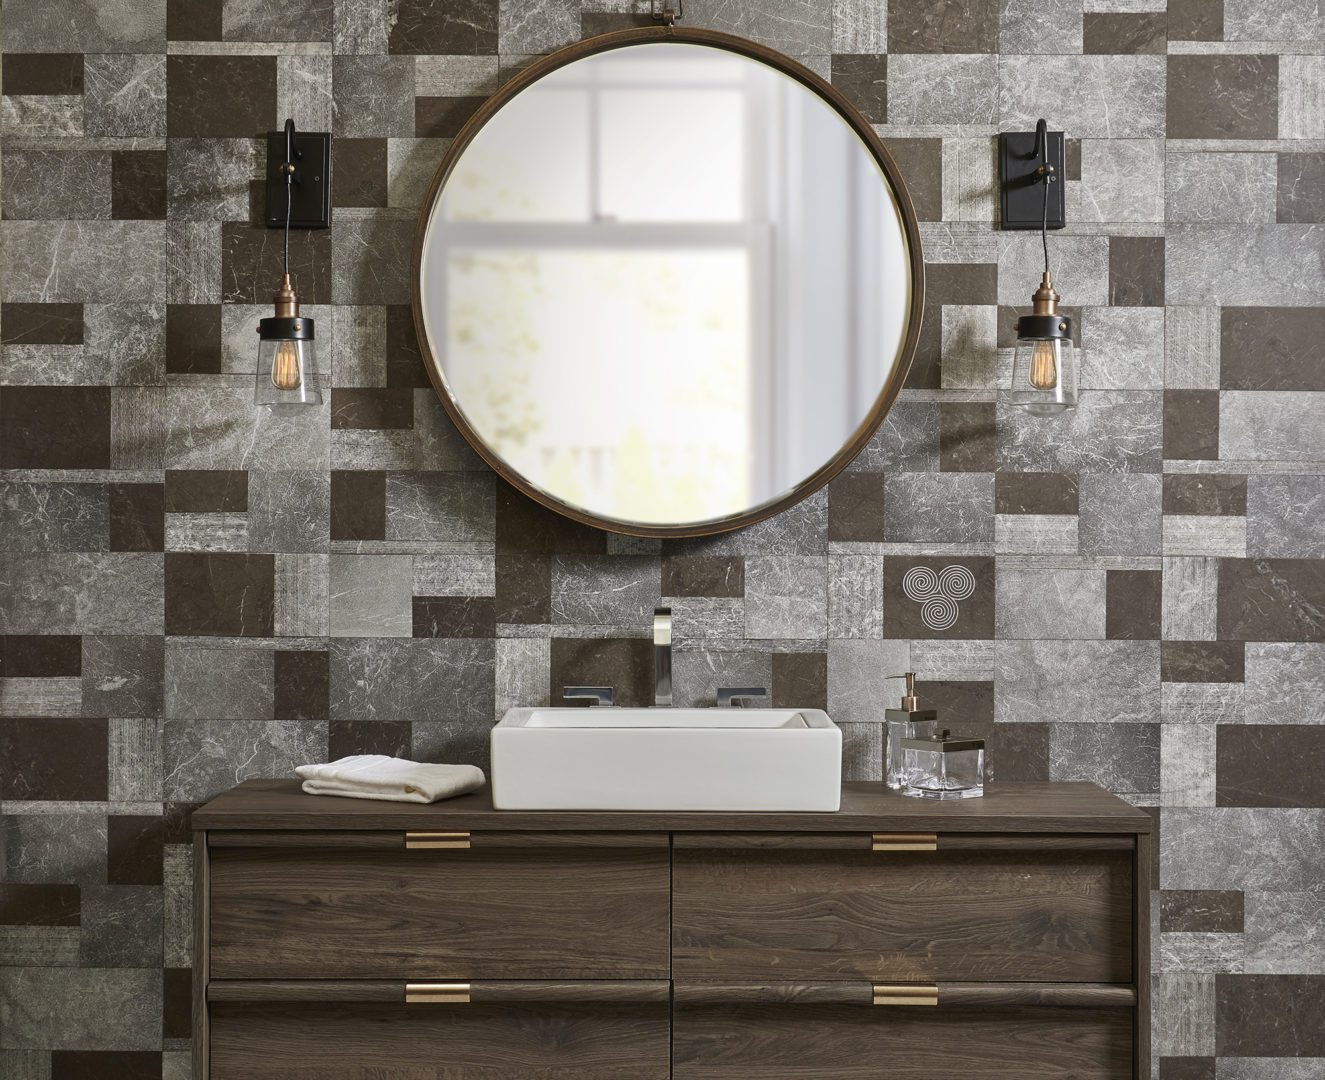 Kaya By Clodagh Geometry In Natural Stone Akdo Tile Dealers